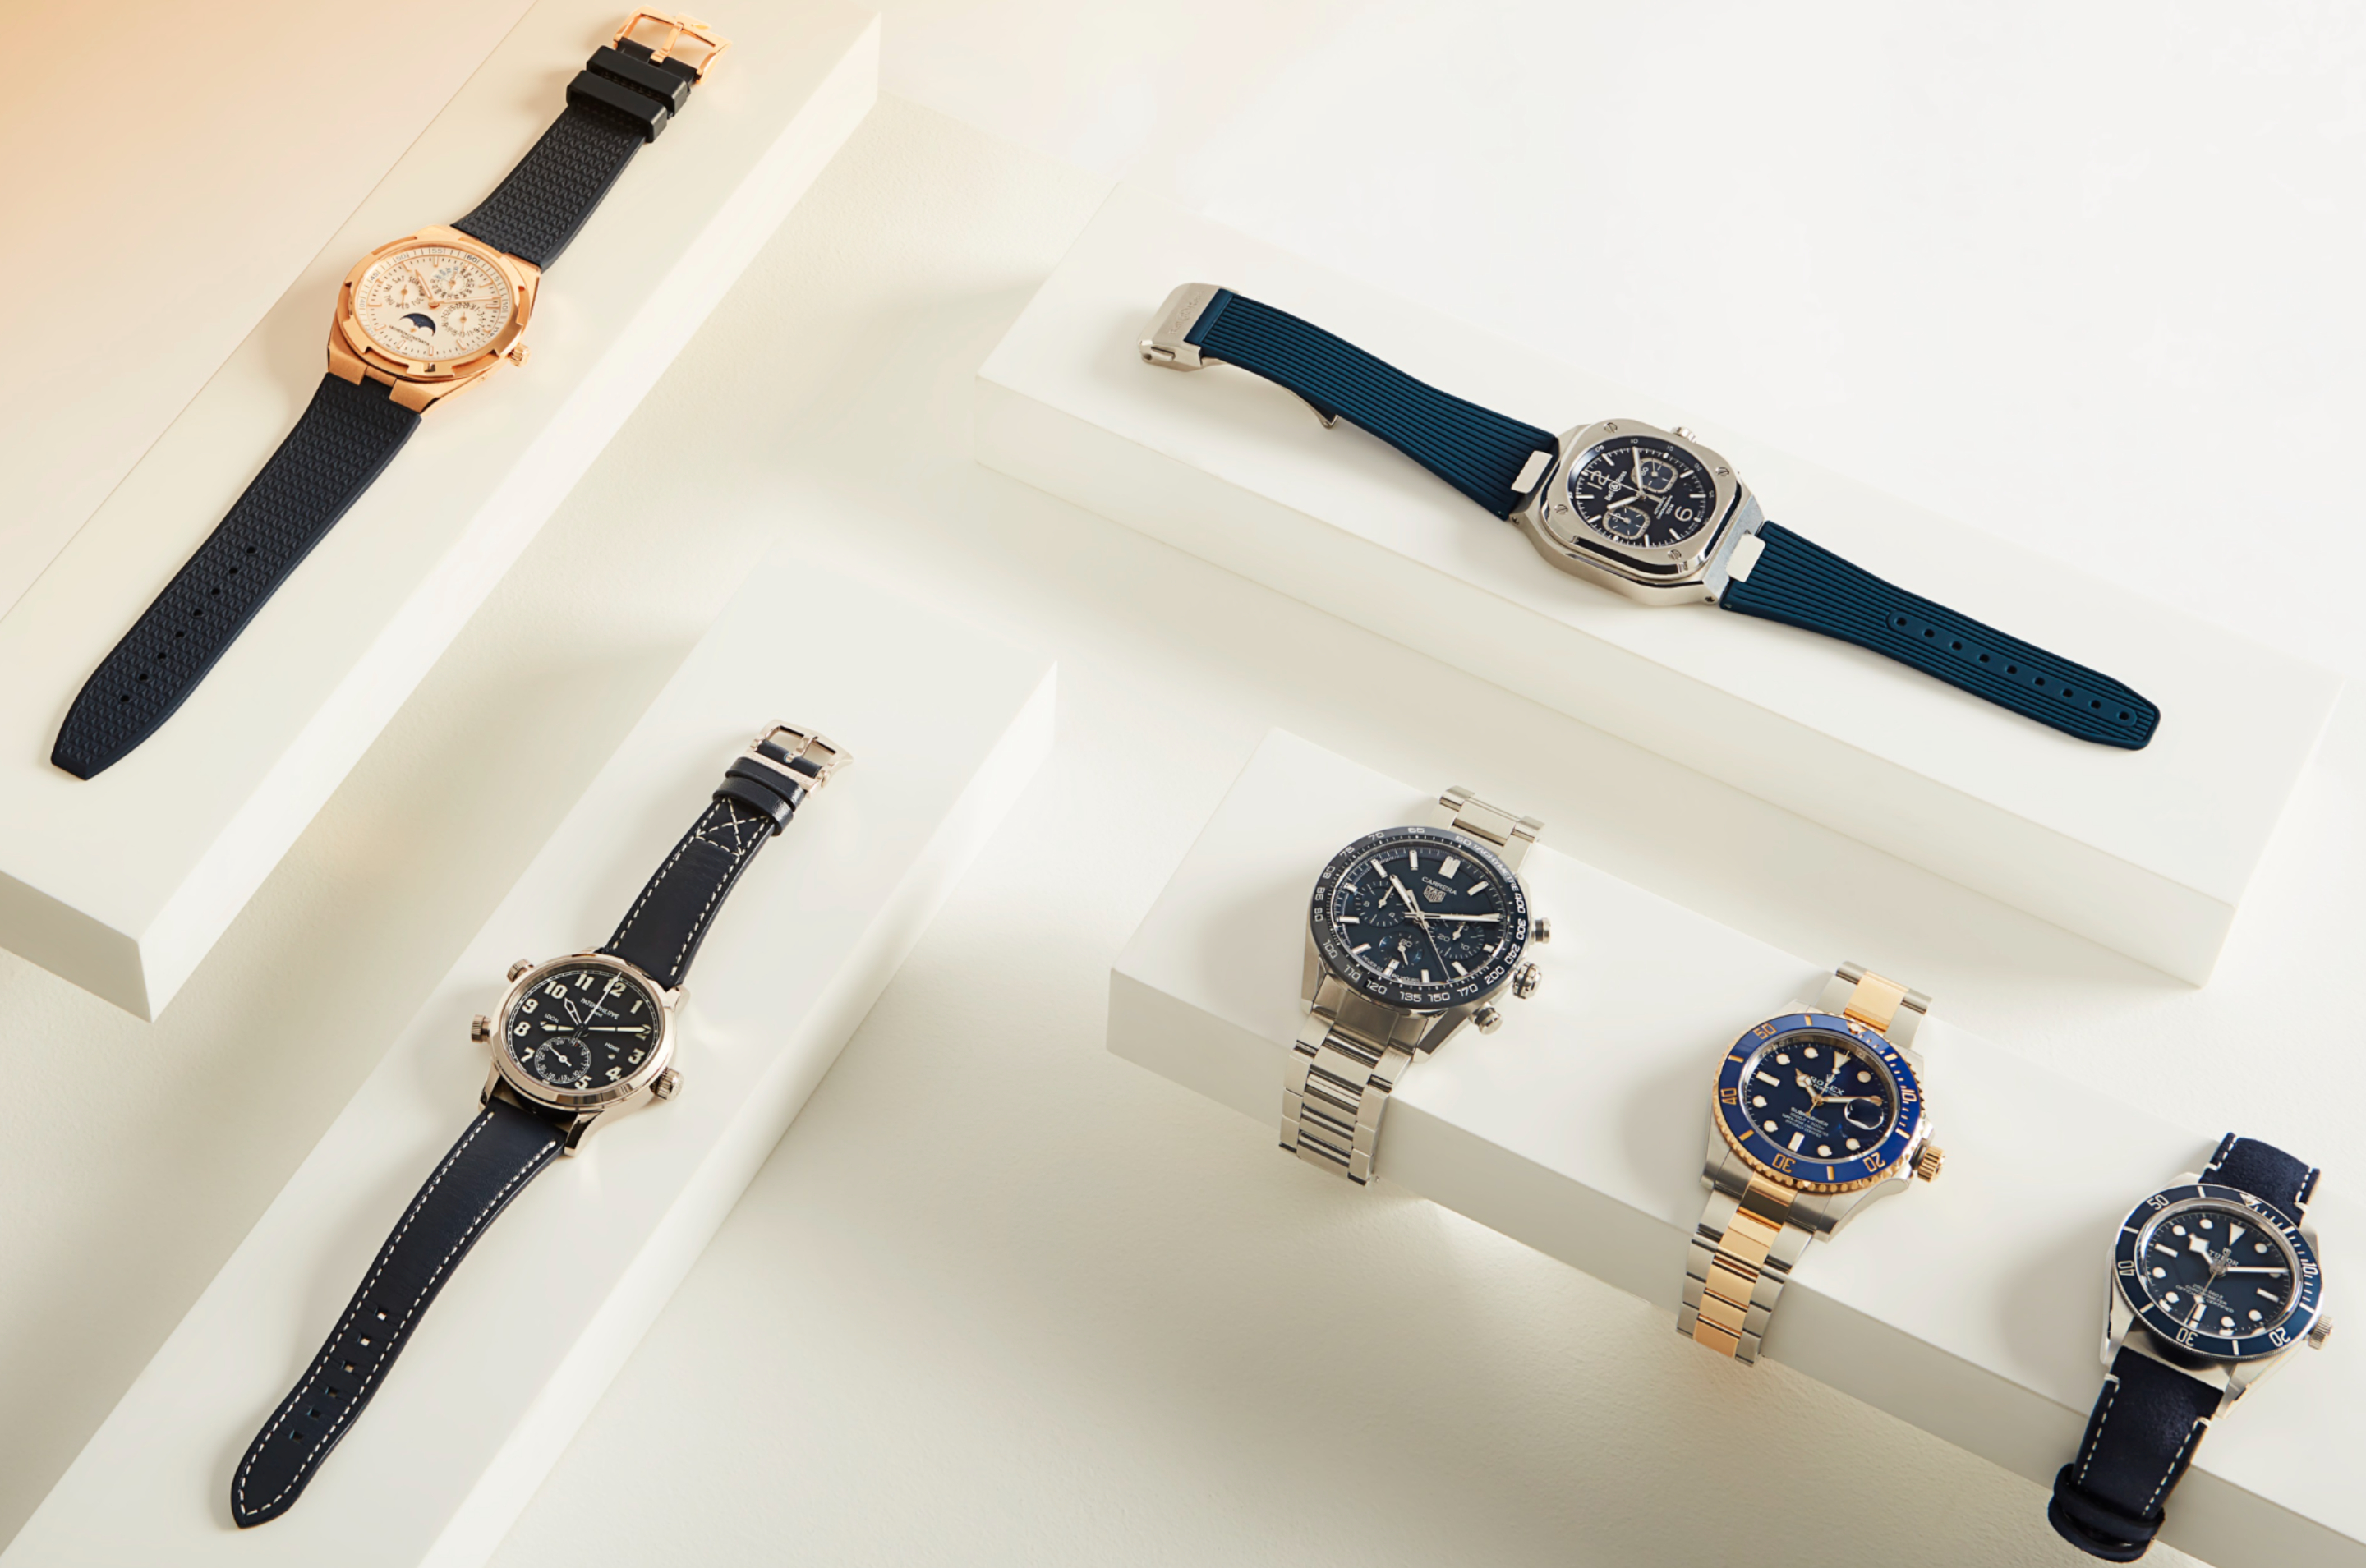 Best New Watches for Christmas 2020